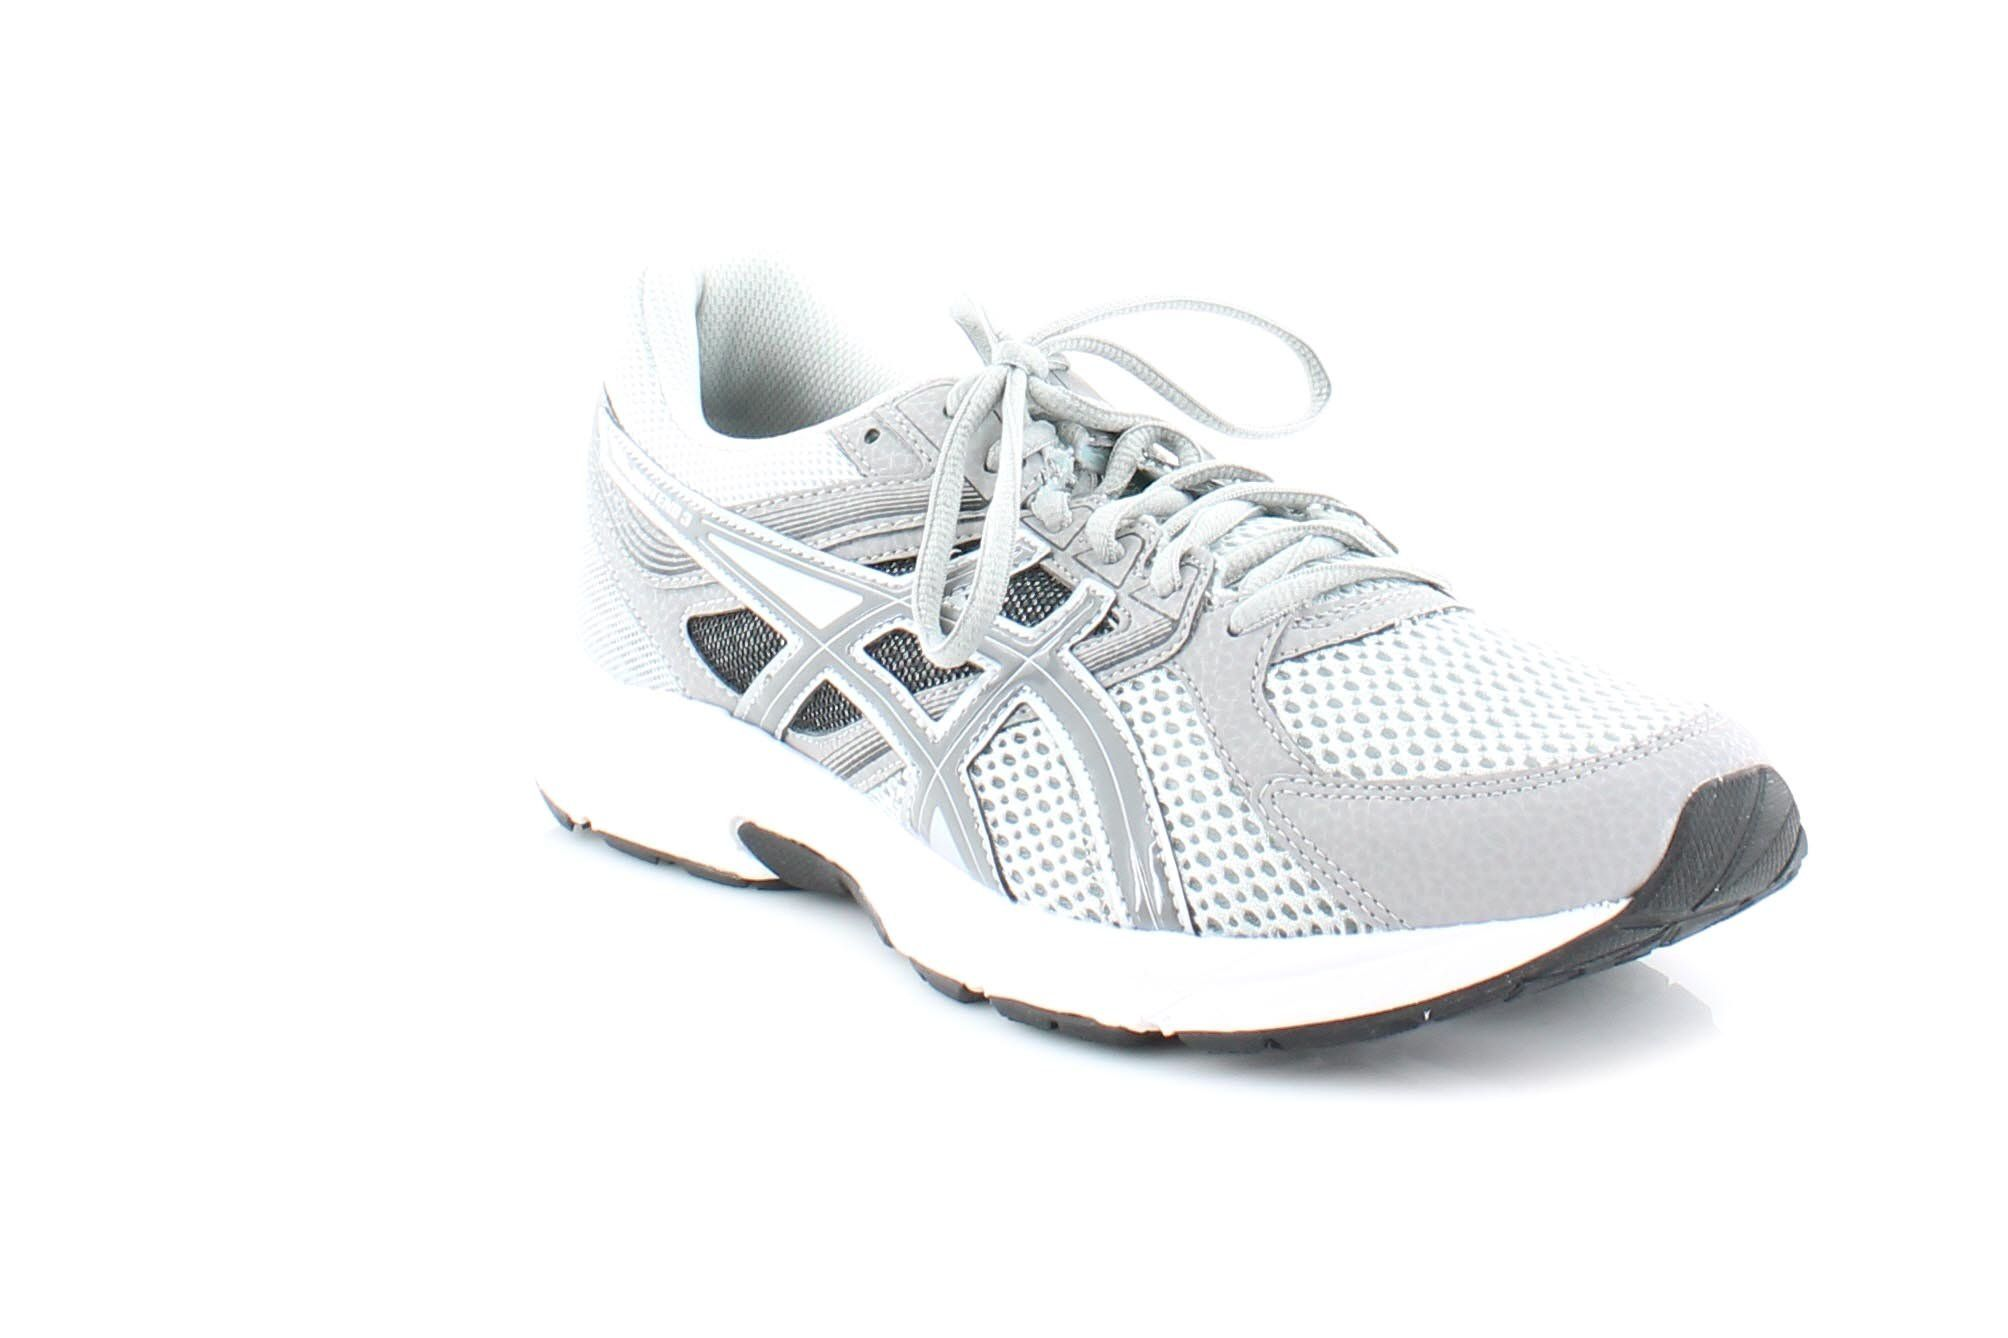 asics with orthotics